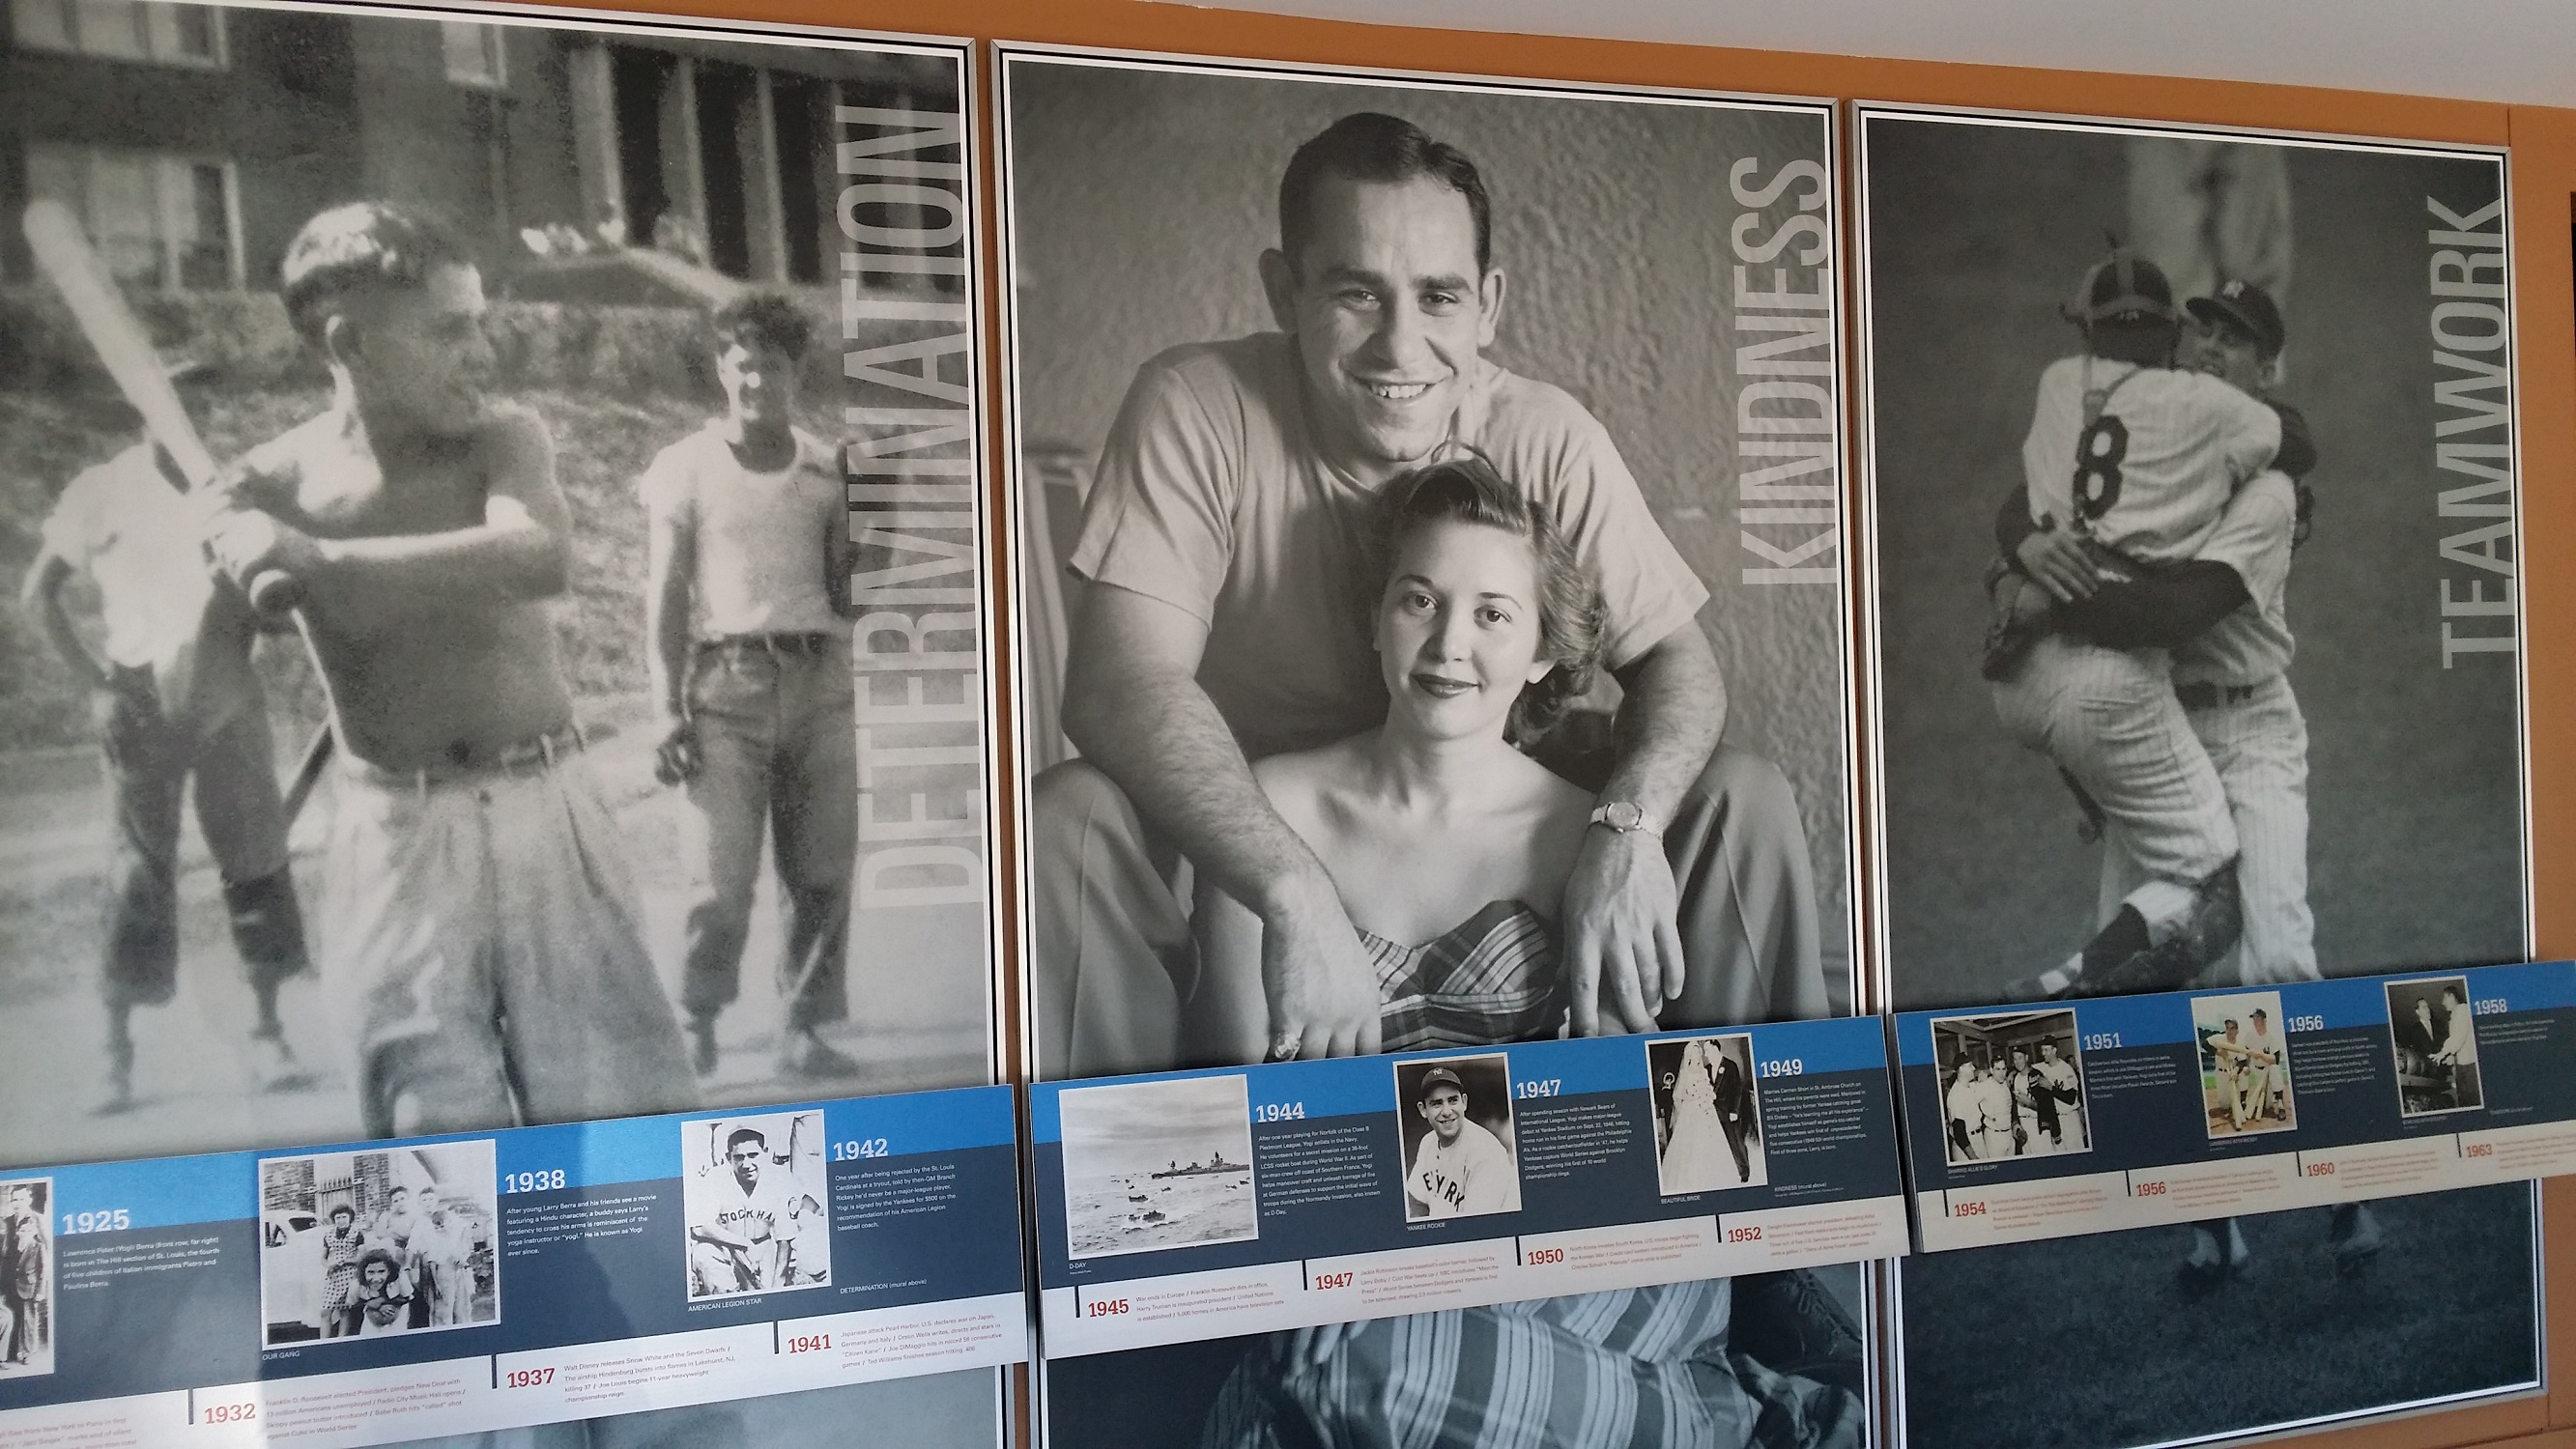 After his death, Yogi Berra's legacy lives on at museum